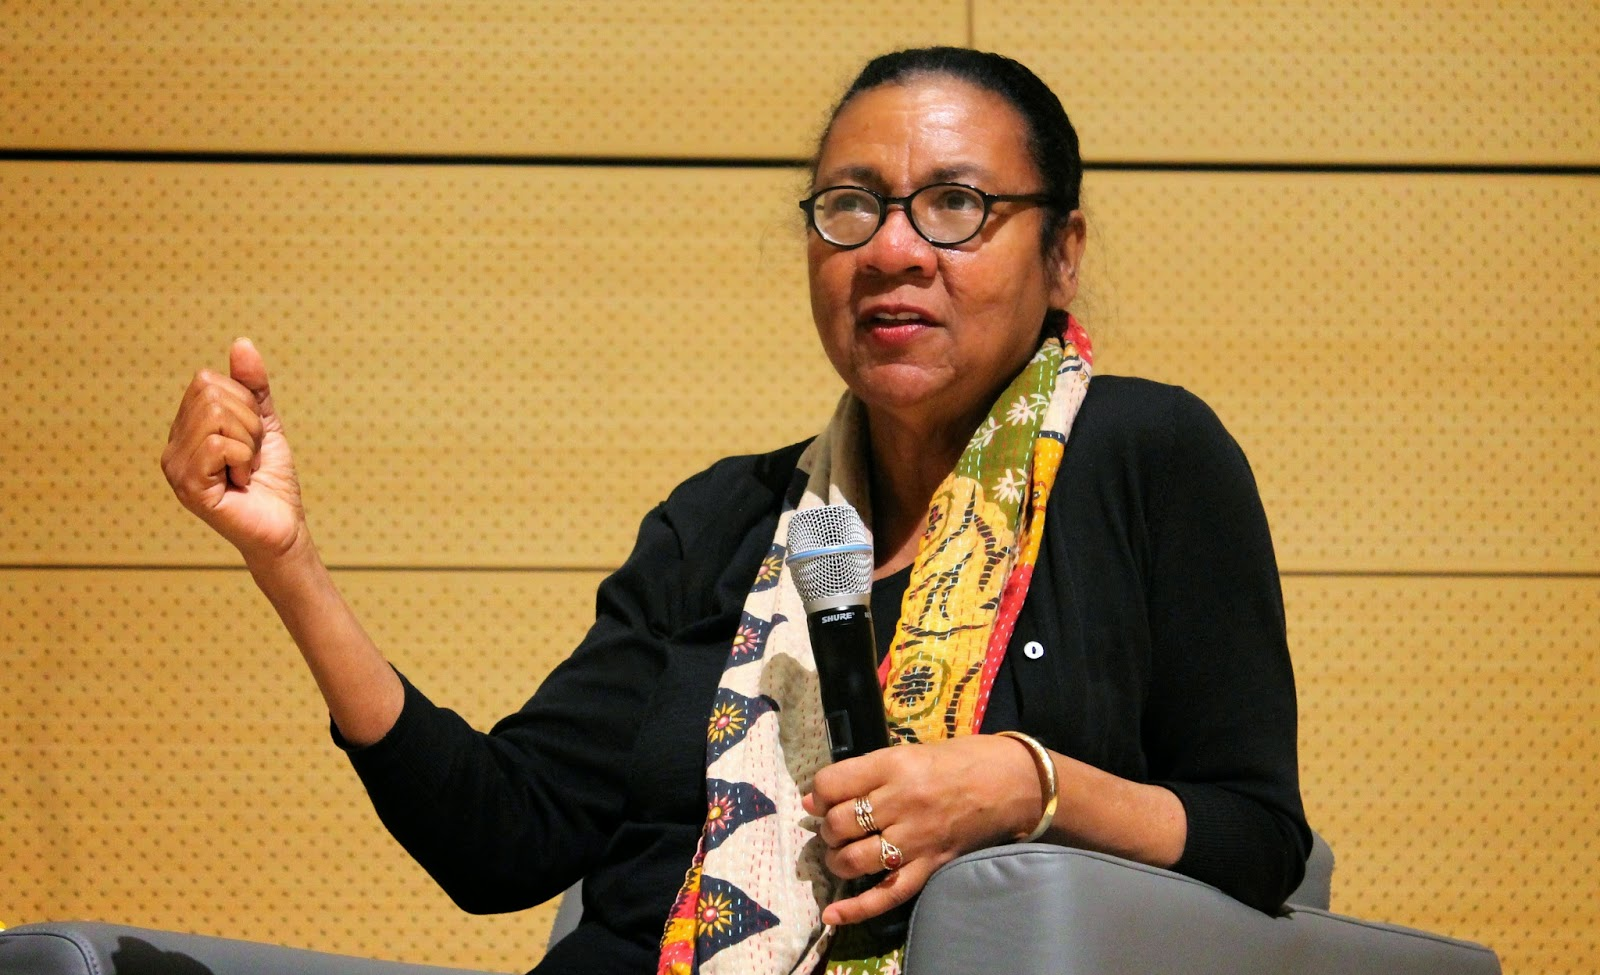 bell hooks incorrect stance on punnishment Bell hooks name and quotes, along with many other great black woman activists such as chimamanda ngozi adichie, # blacklivesmatter, uk activist marcia rigg were mentioned so many times during the day of the women of the women of the world festival 2017, southbank, london uk heres my break down of the day.